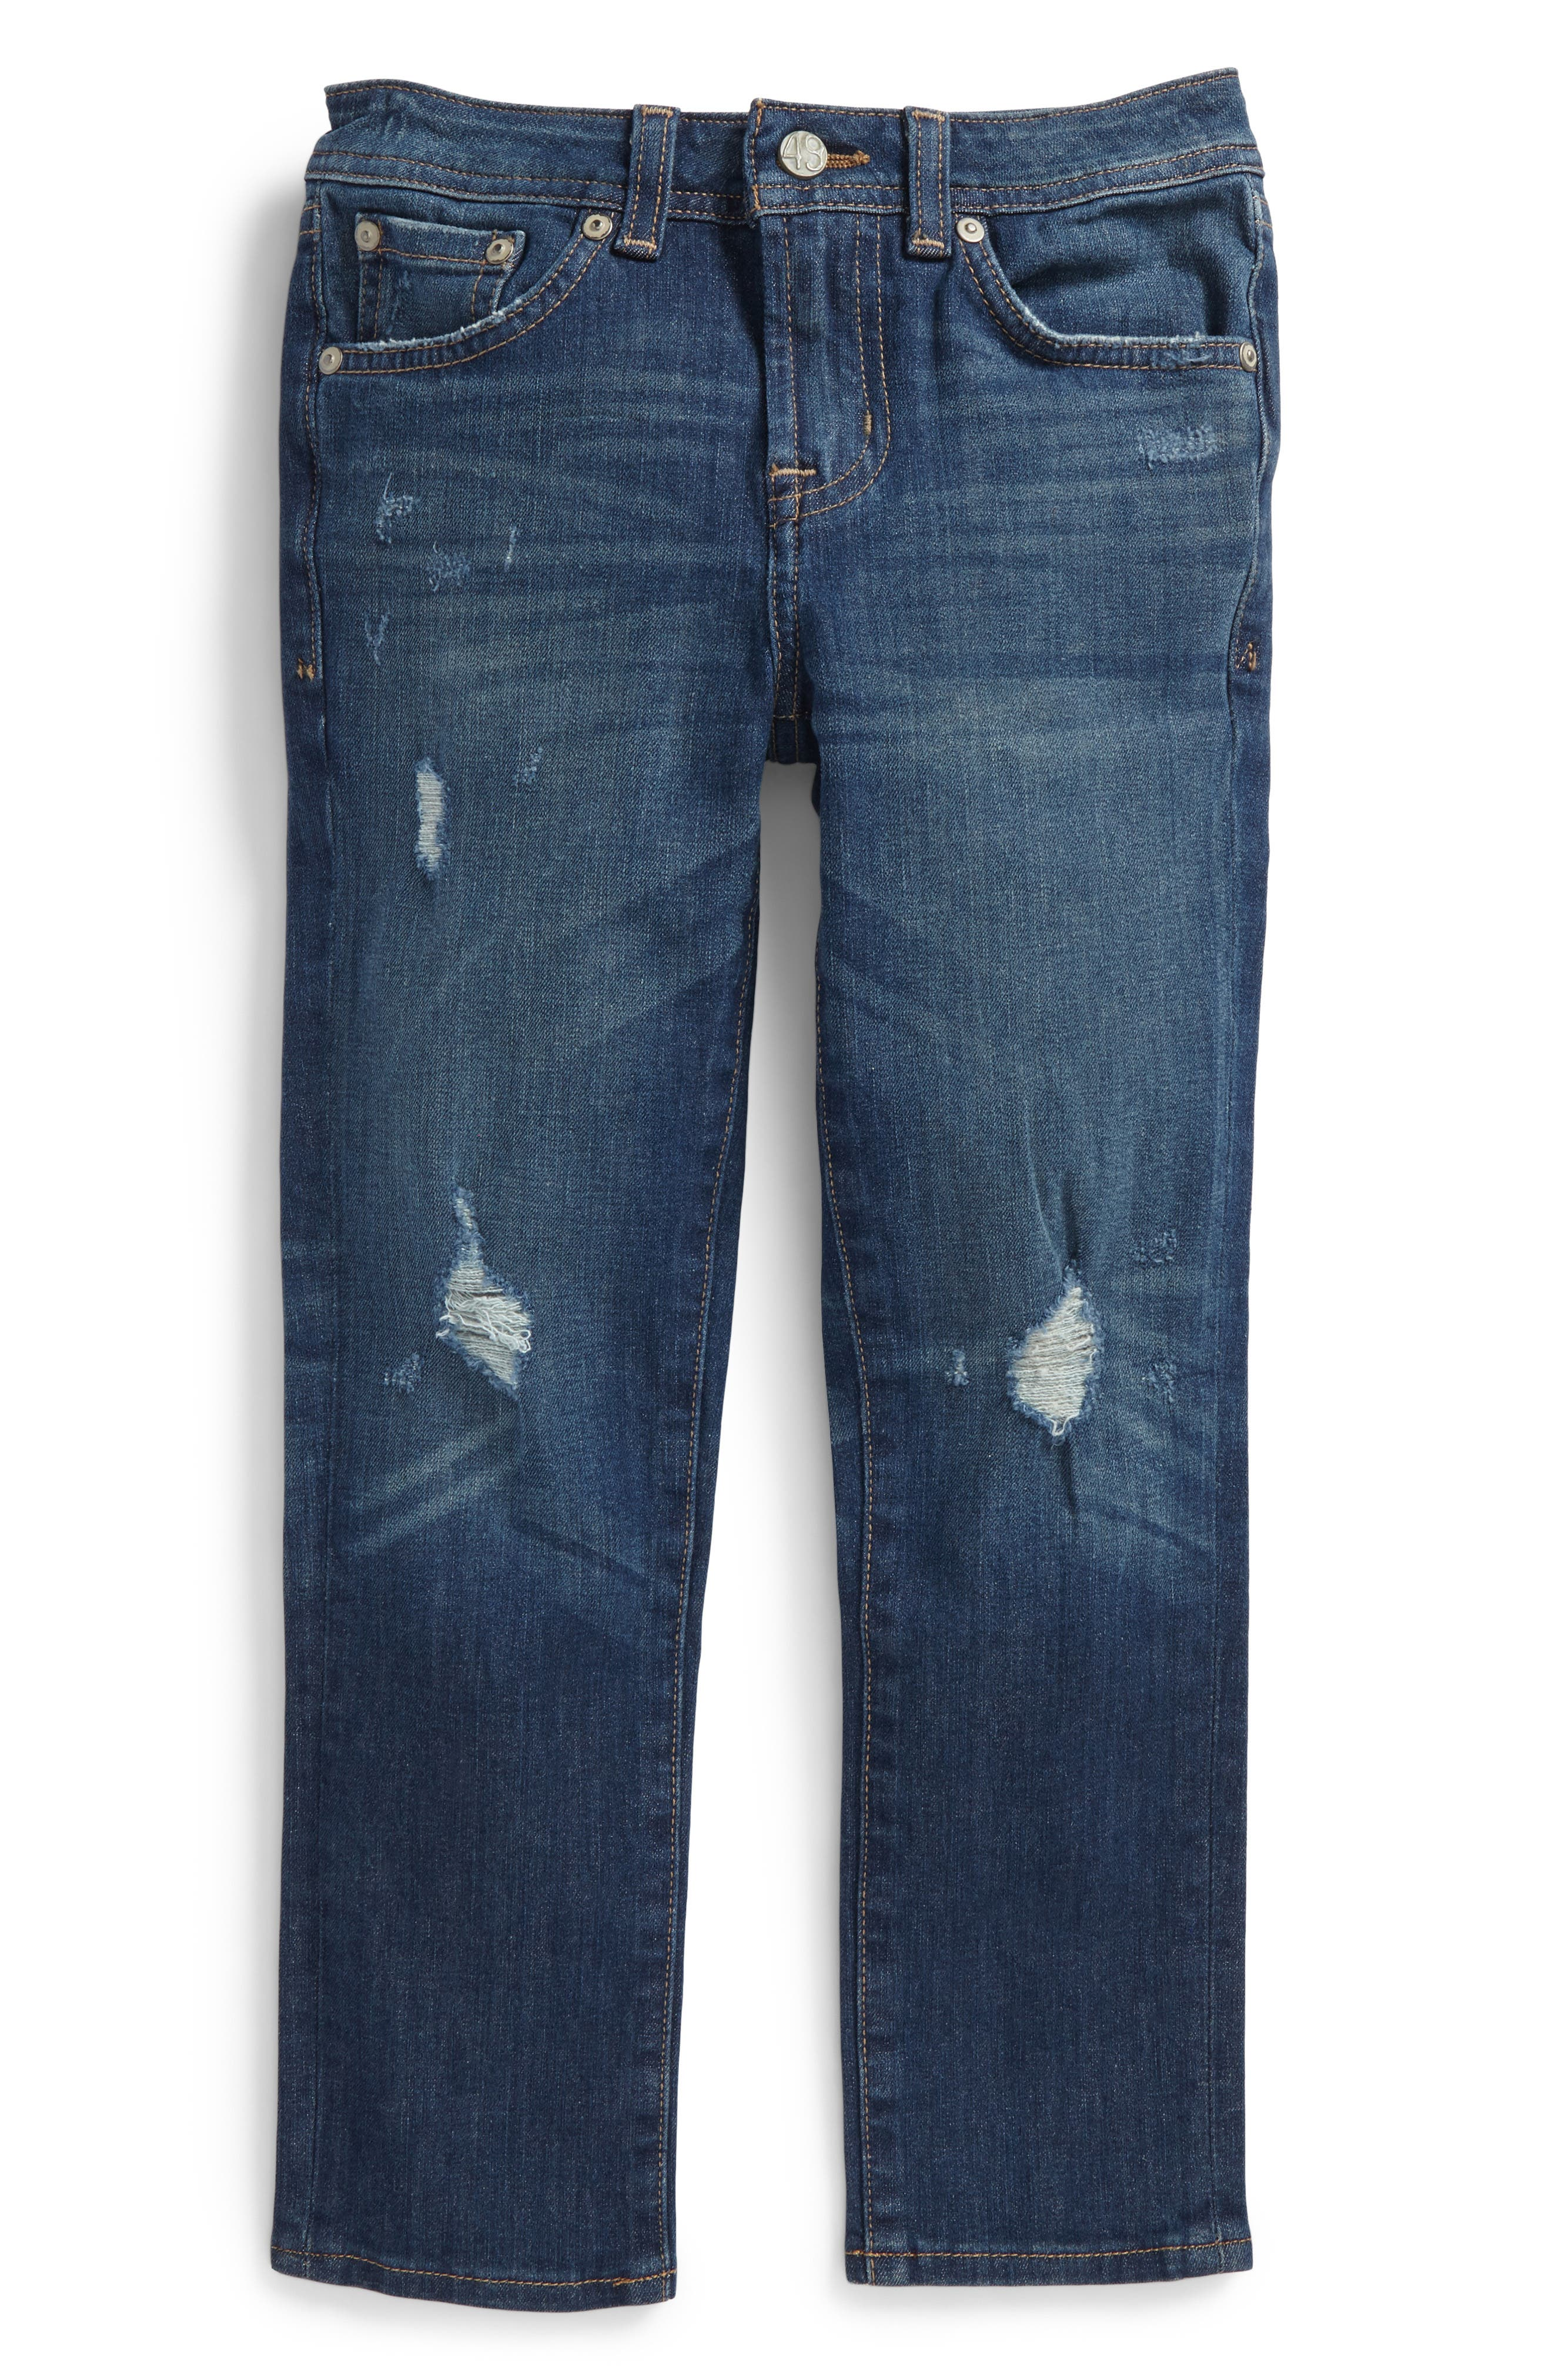 ag adriano goldschmied kids The Noah Slim Straight Leg Jeans (Toddler Boys & Little Boys)